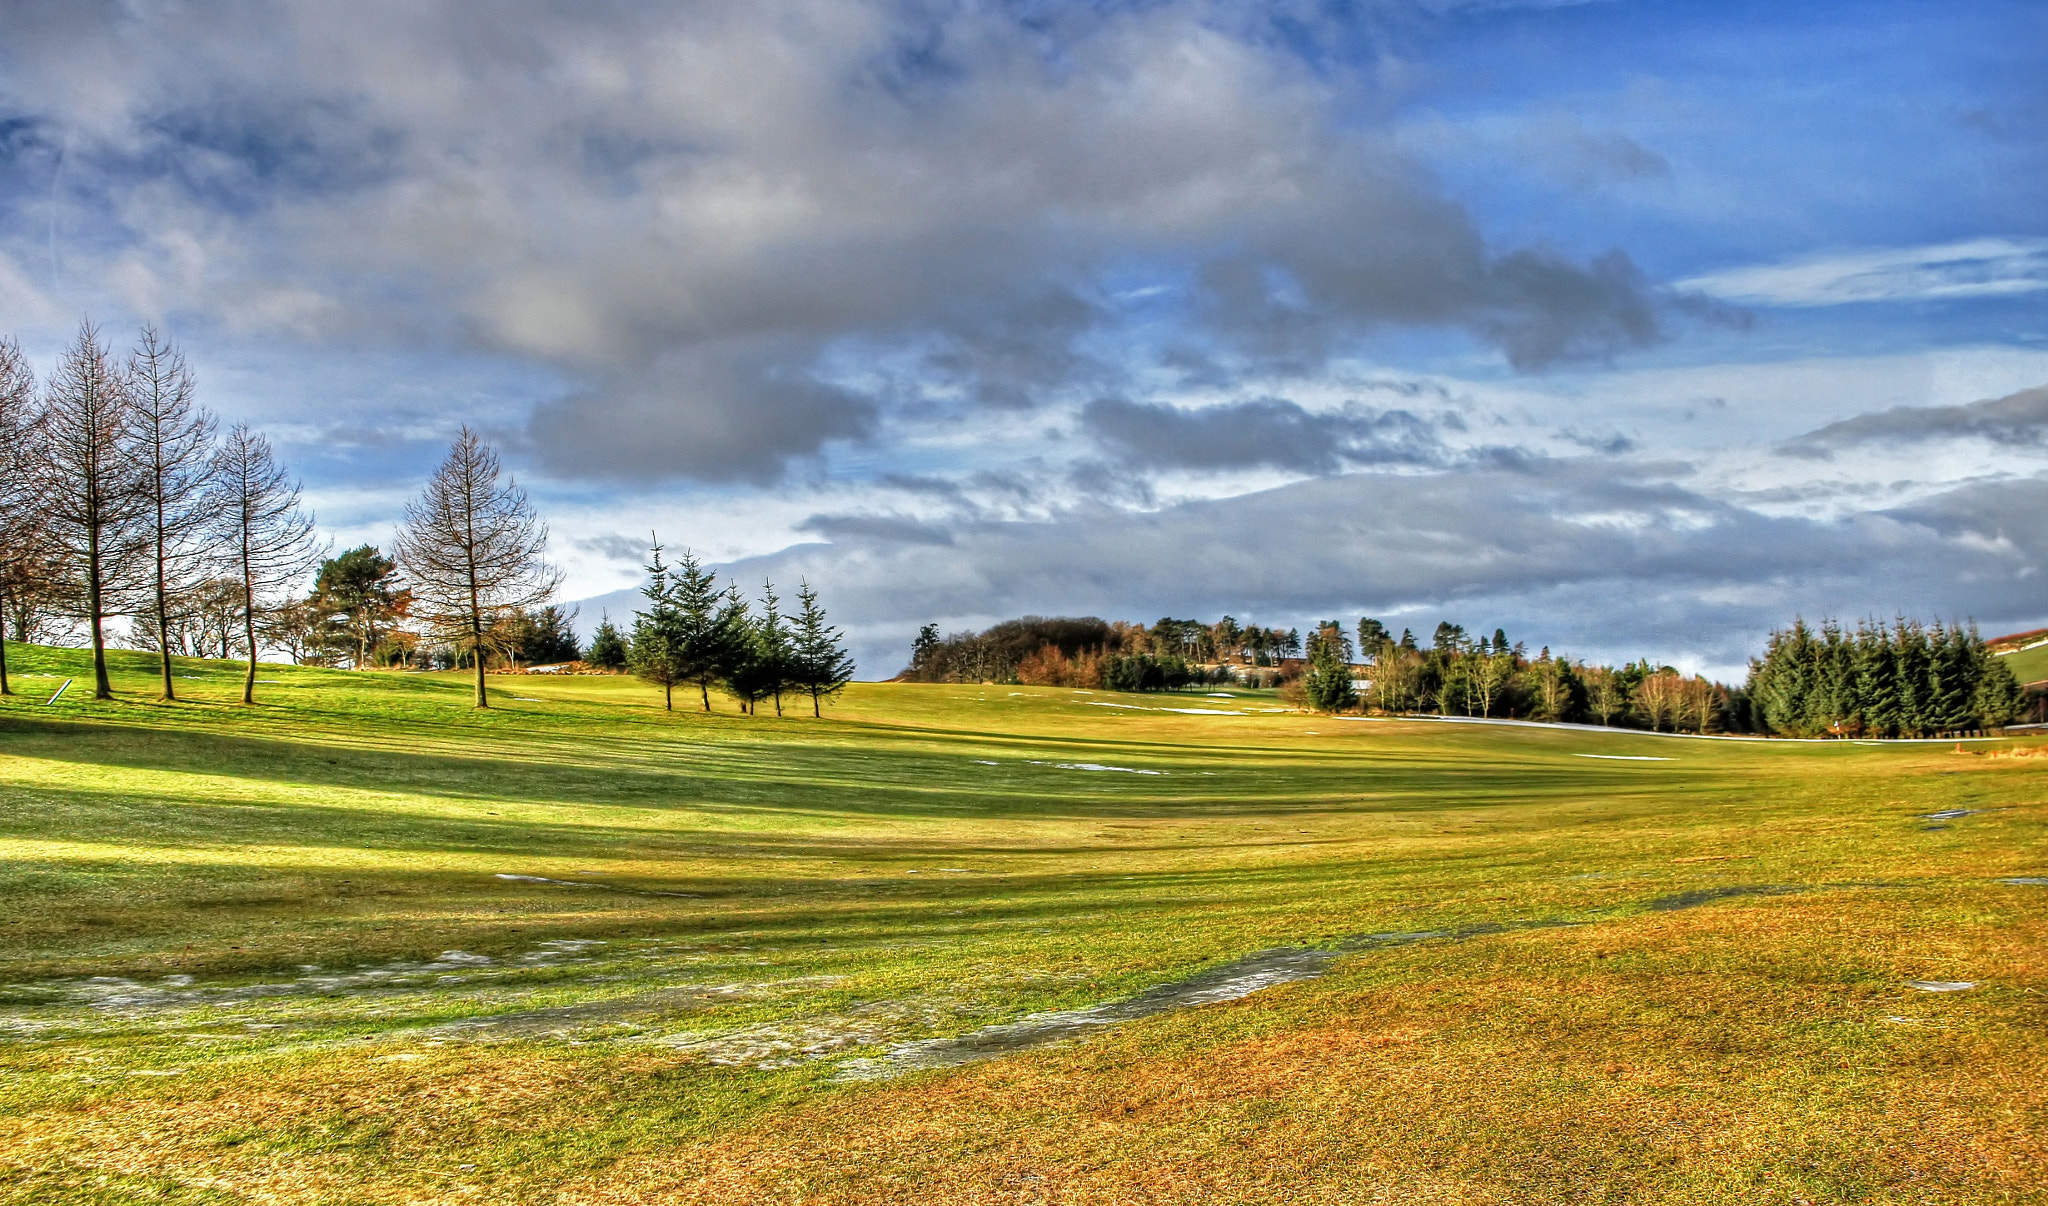 Photograph Golf Course by Hilda Murray on 500px